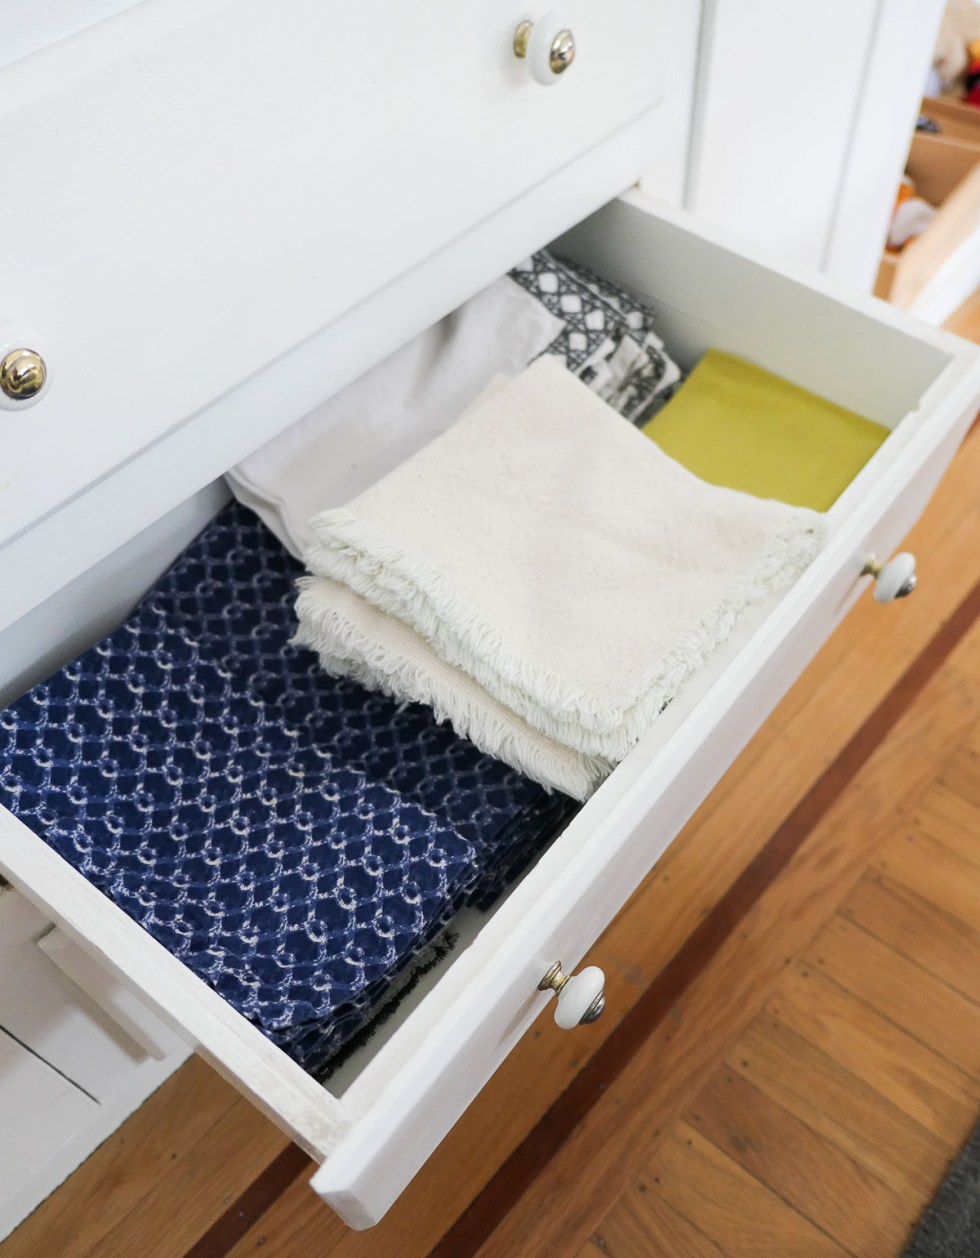 Cloth Napkins in Drawer - How to Stop Using Paper Towels